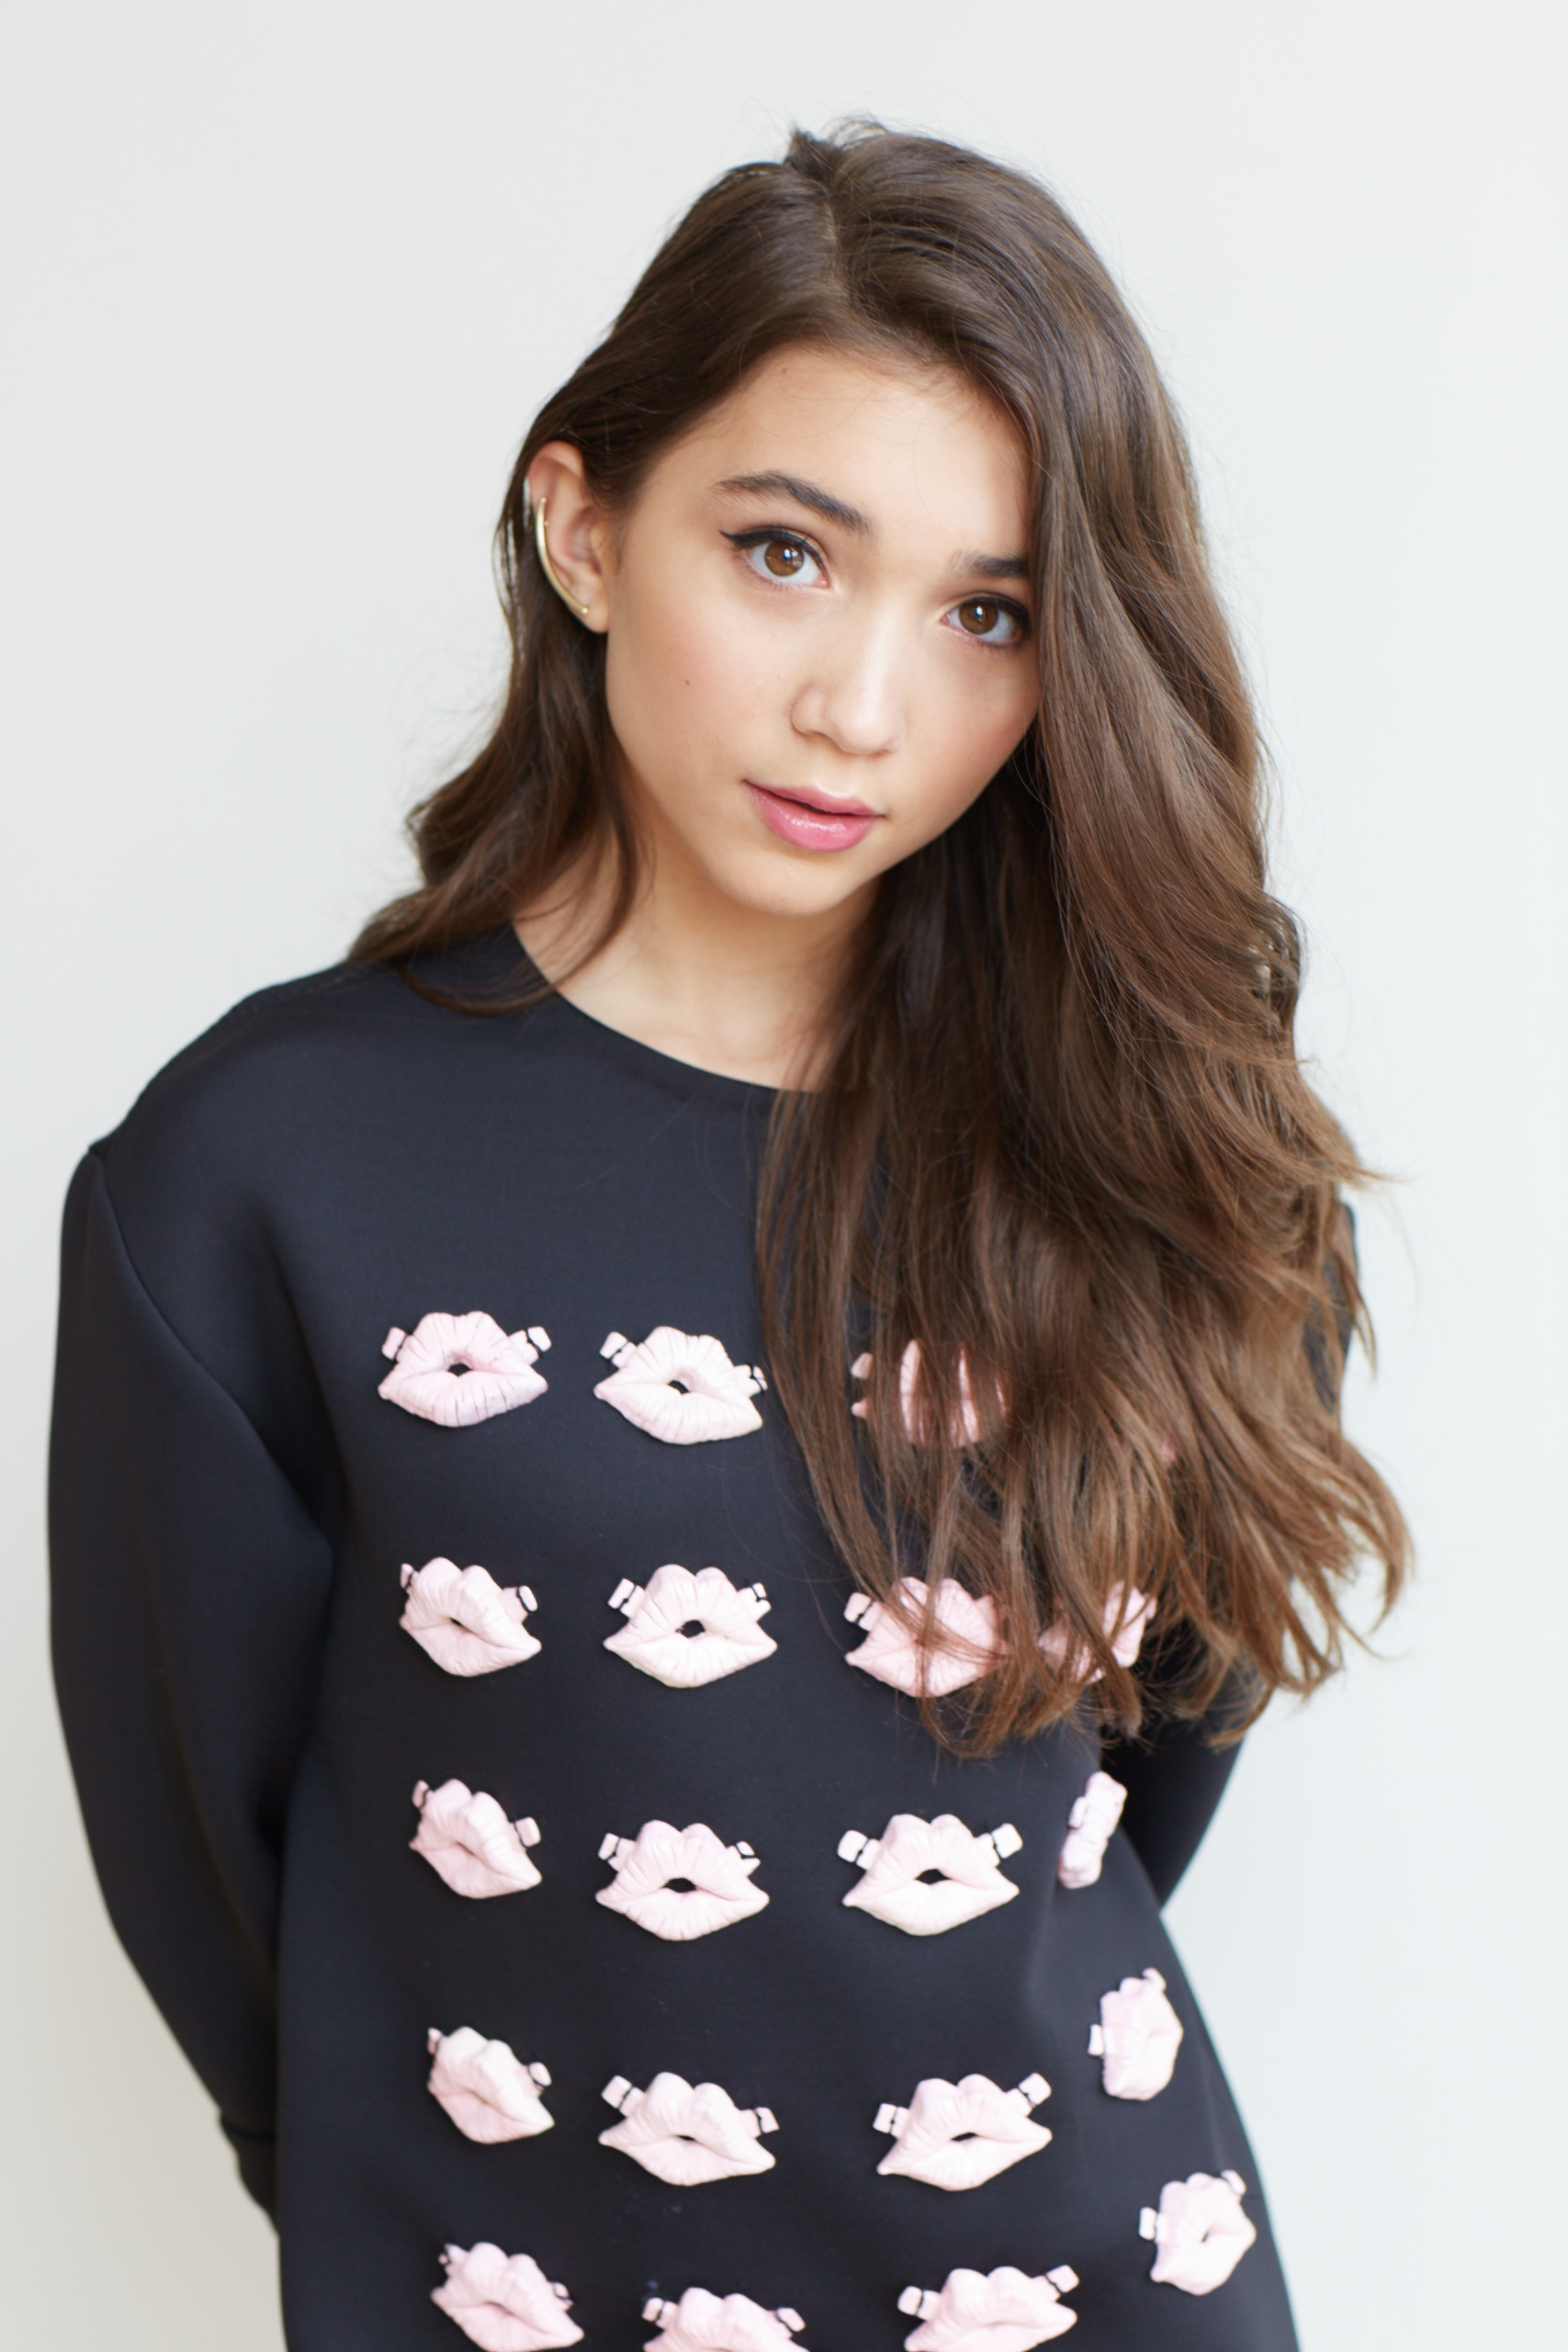 1000+ ideas about Rowan Blanchard on Pinterest | Sabrina Carpenter